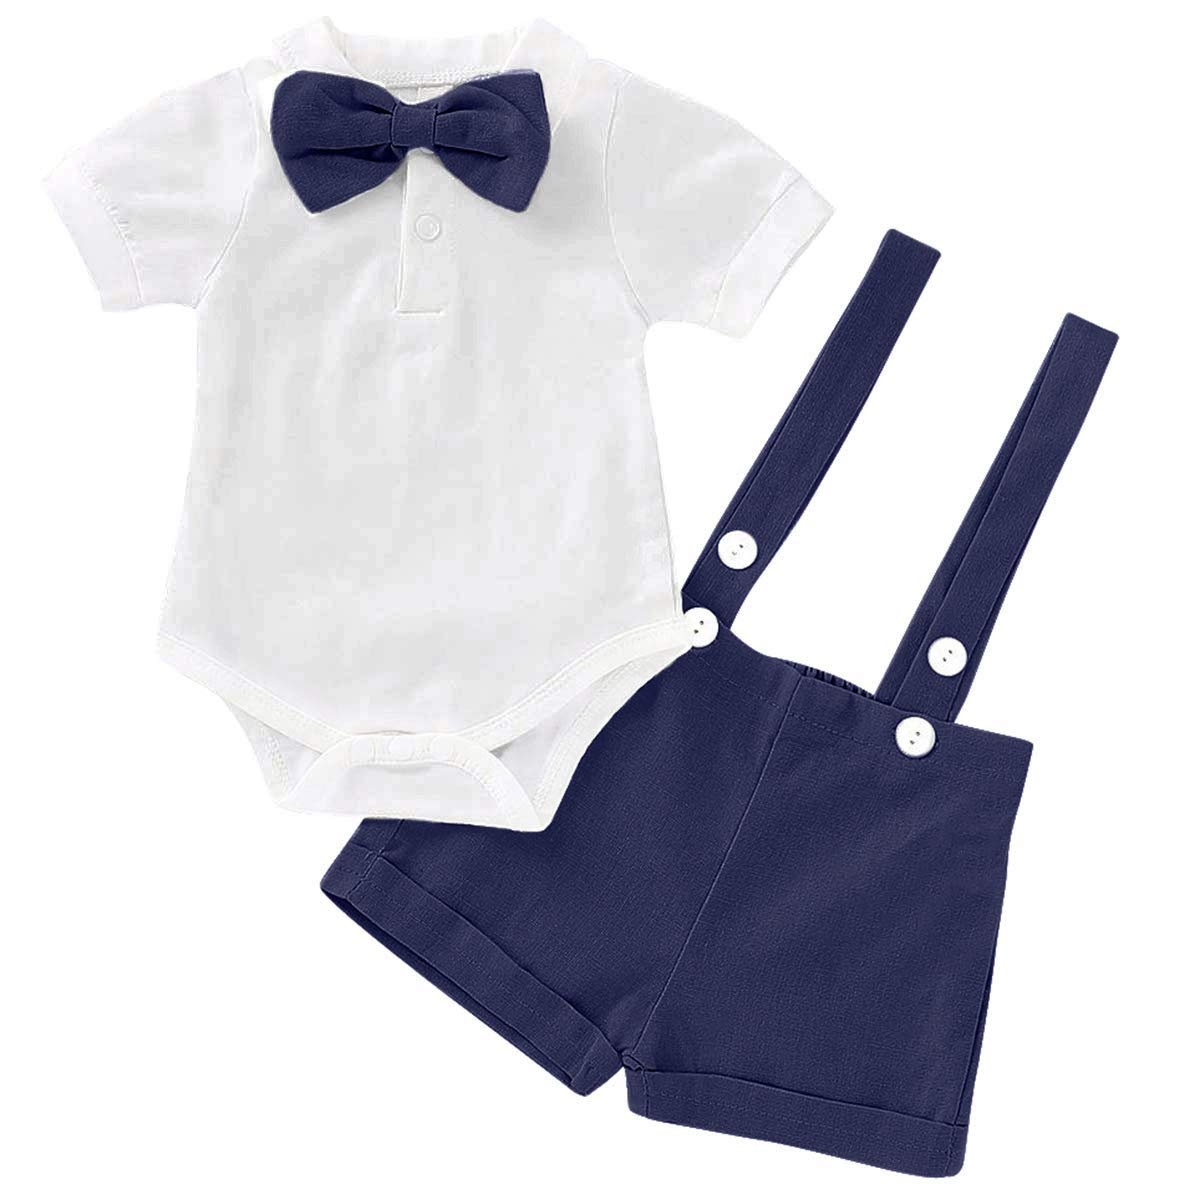 SOBOWO Baby Boys Gentleman Outfits Suits Infant Long Sleeve Romper + Suspenders Pants + Bow Tie Wedding Baptism Clothing Set